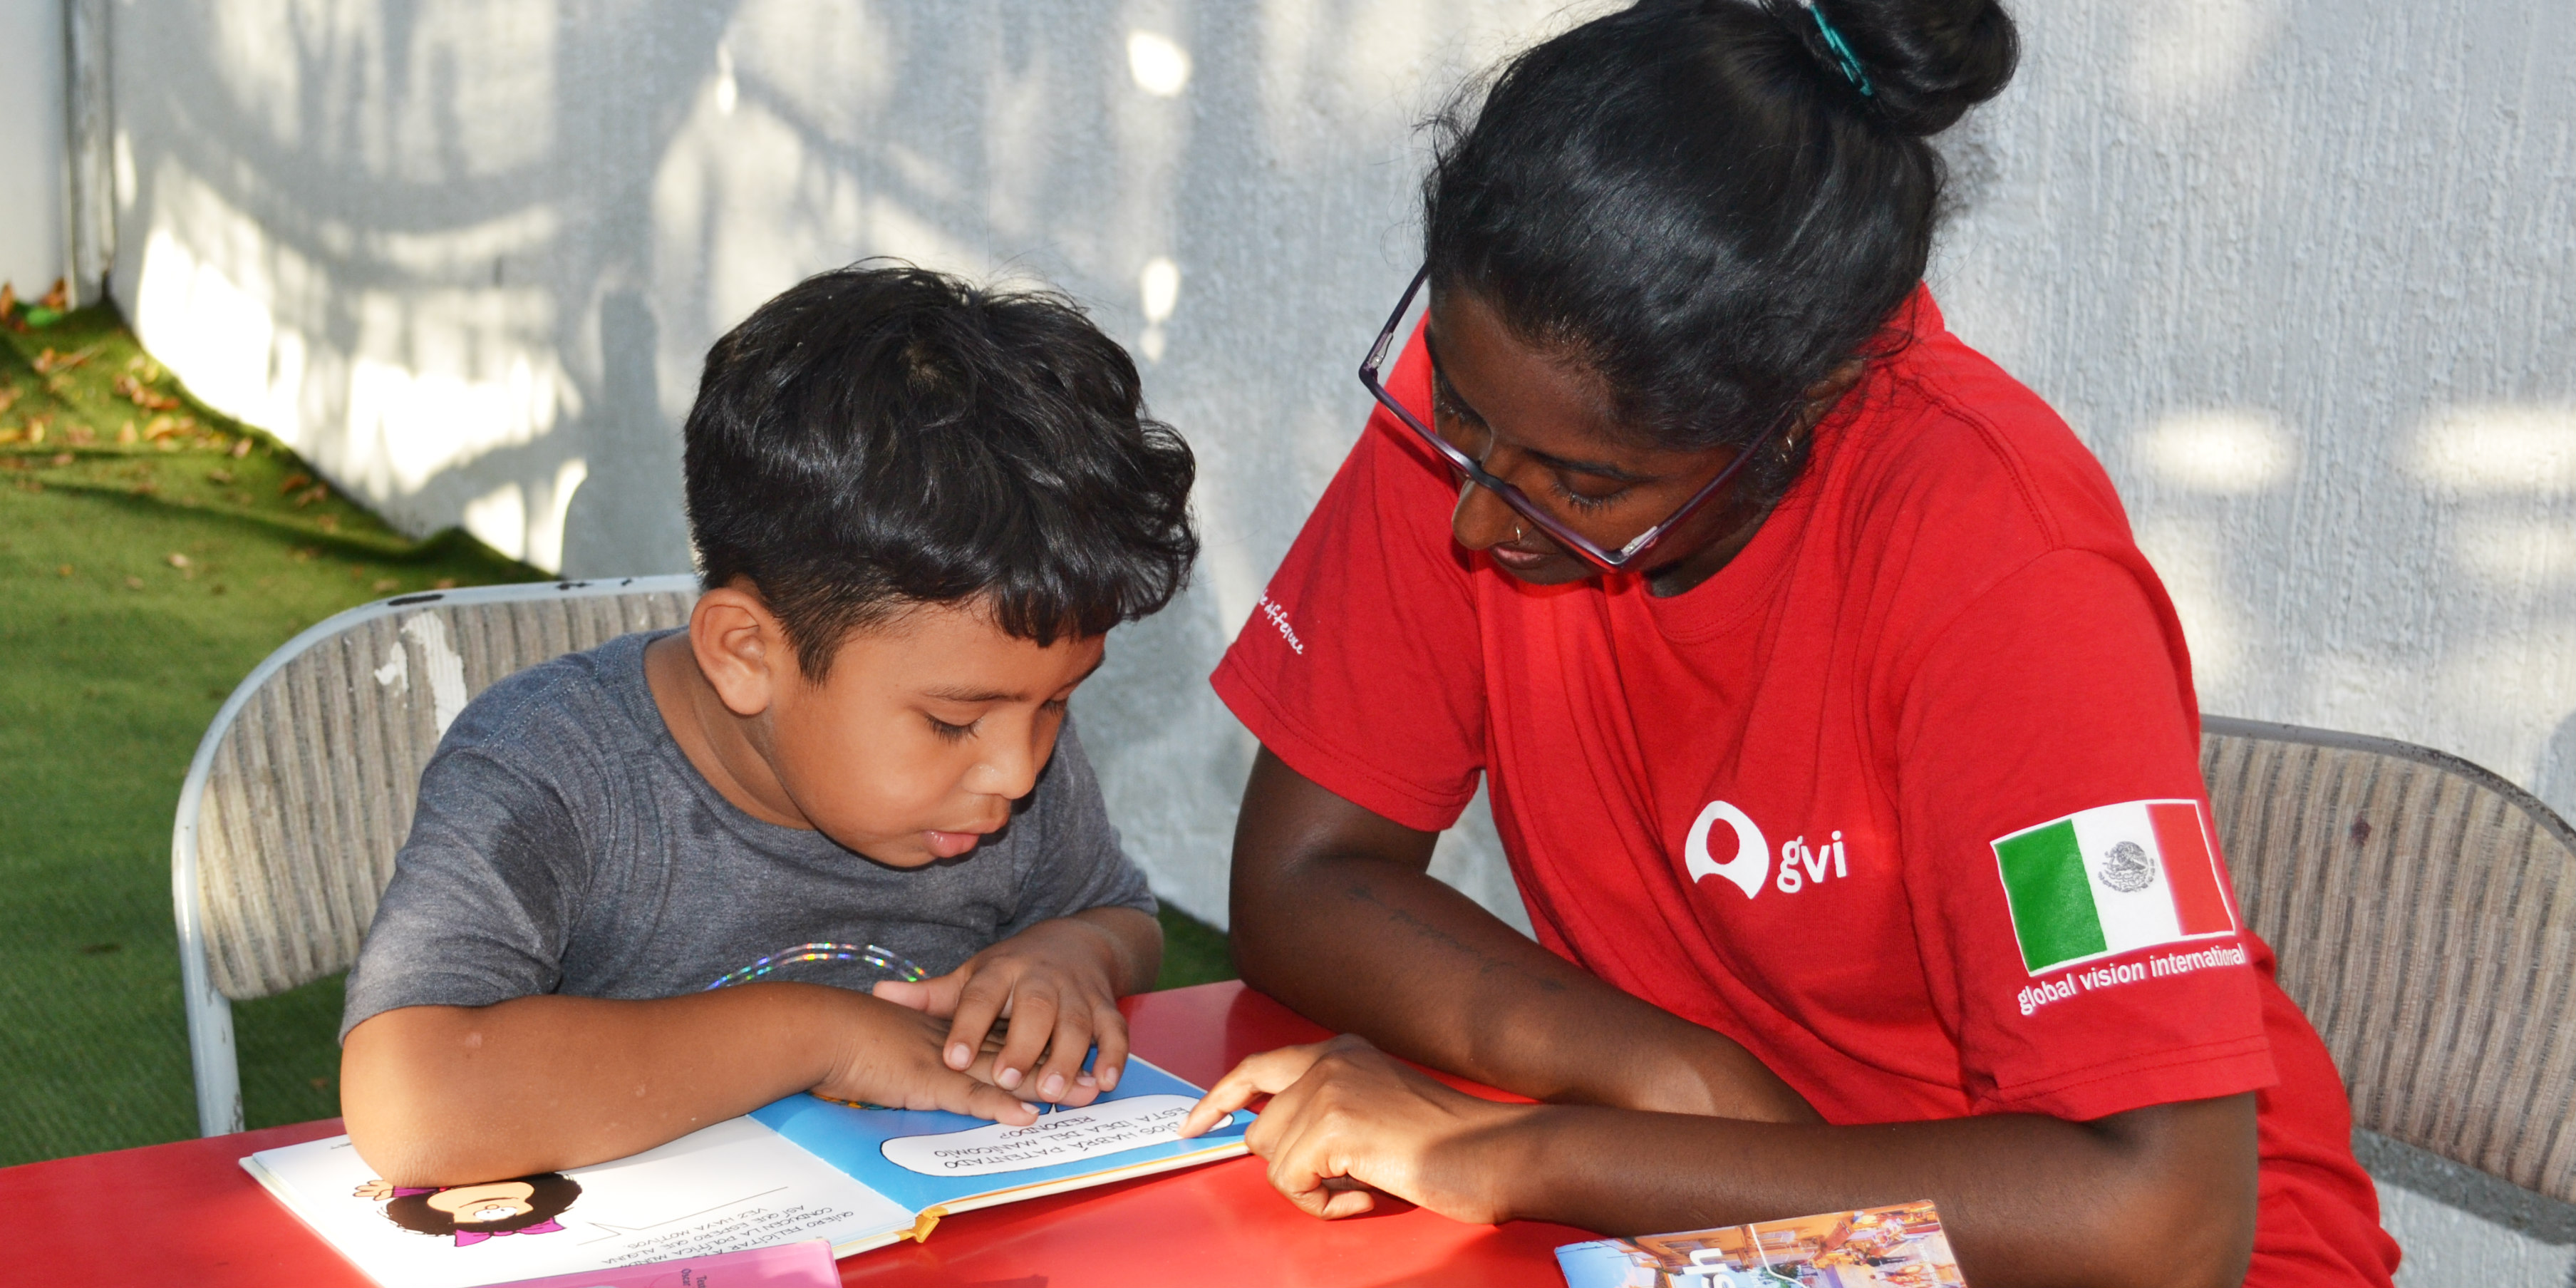 A GVI participant works with a child on their reading, while volunteering in Mexico.